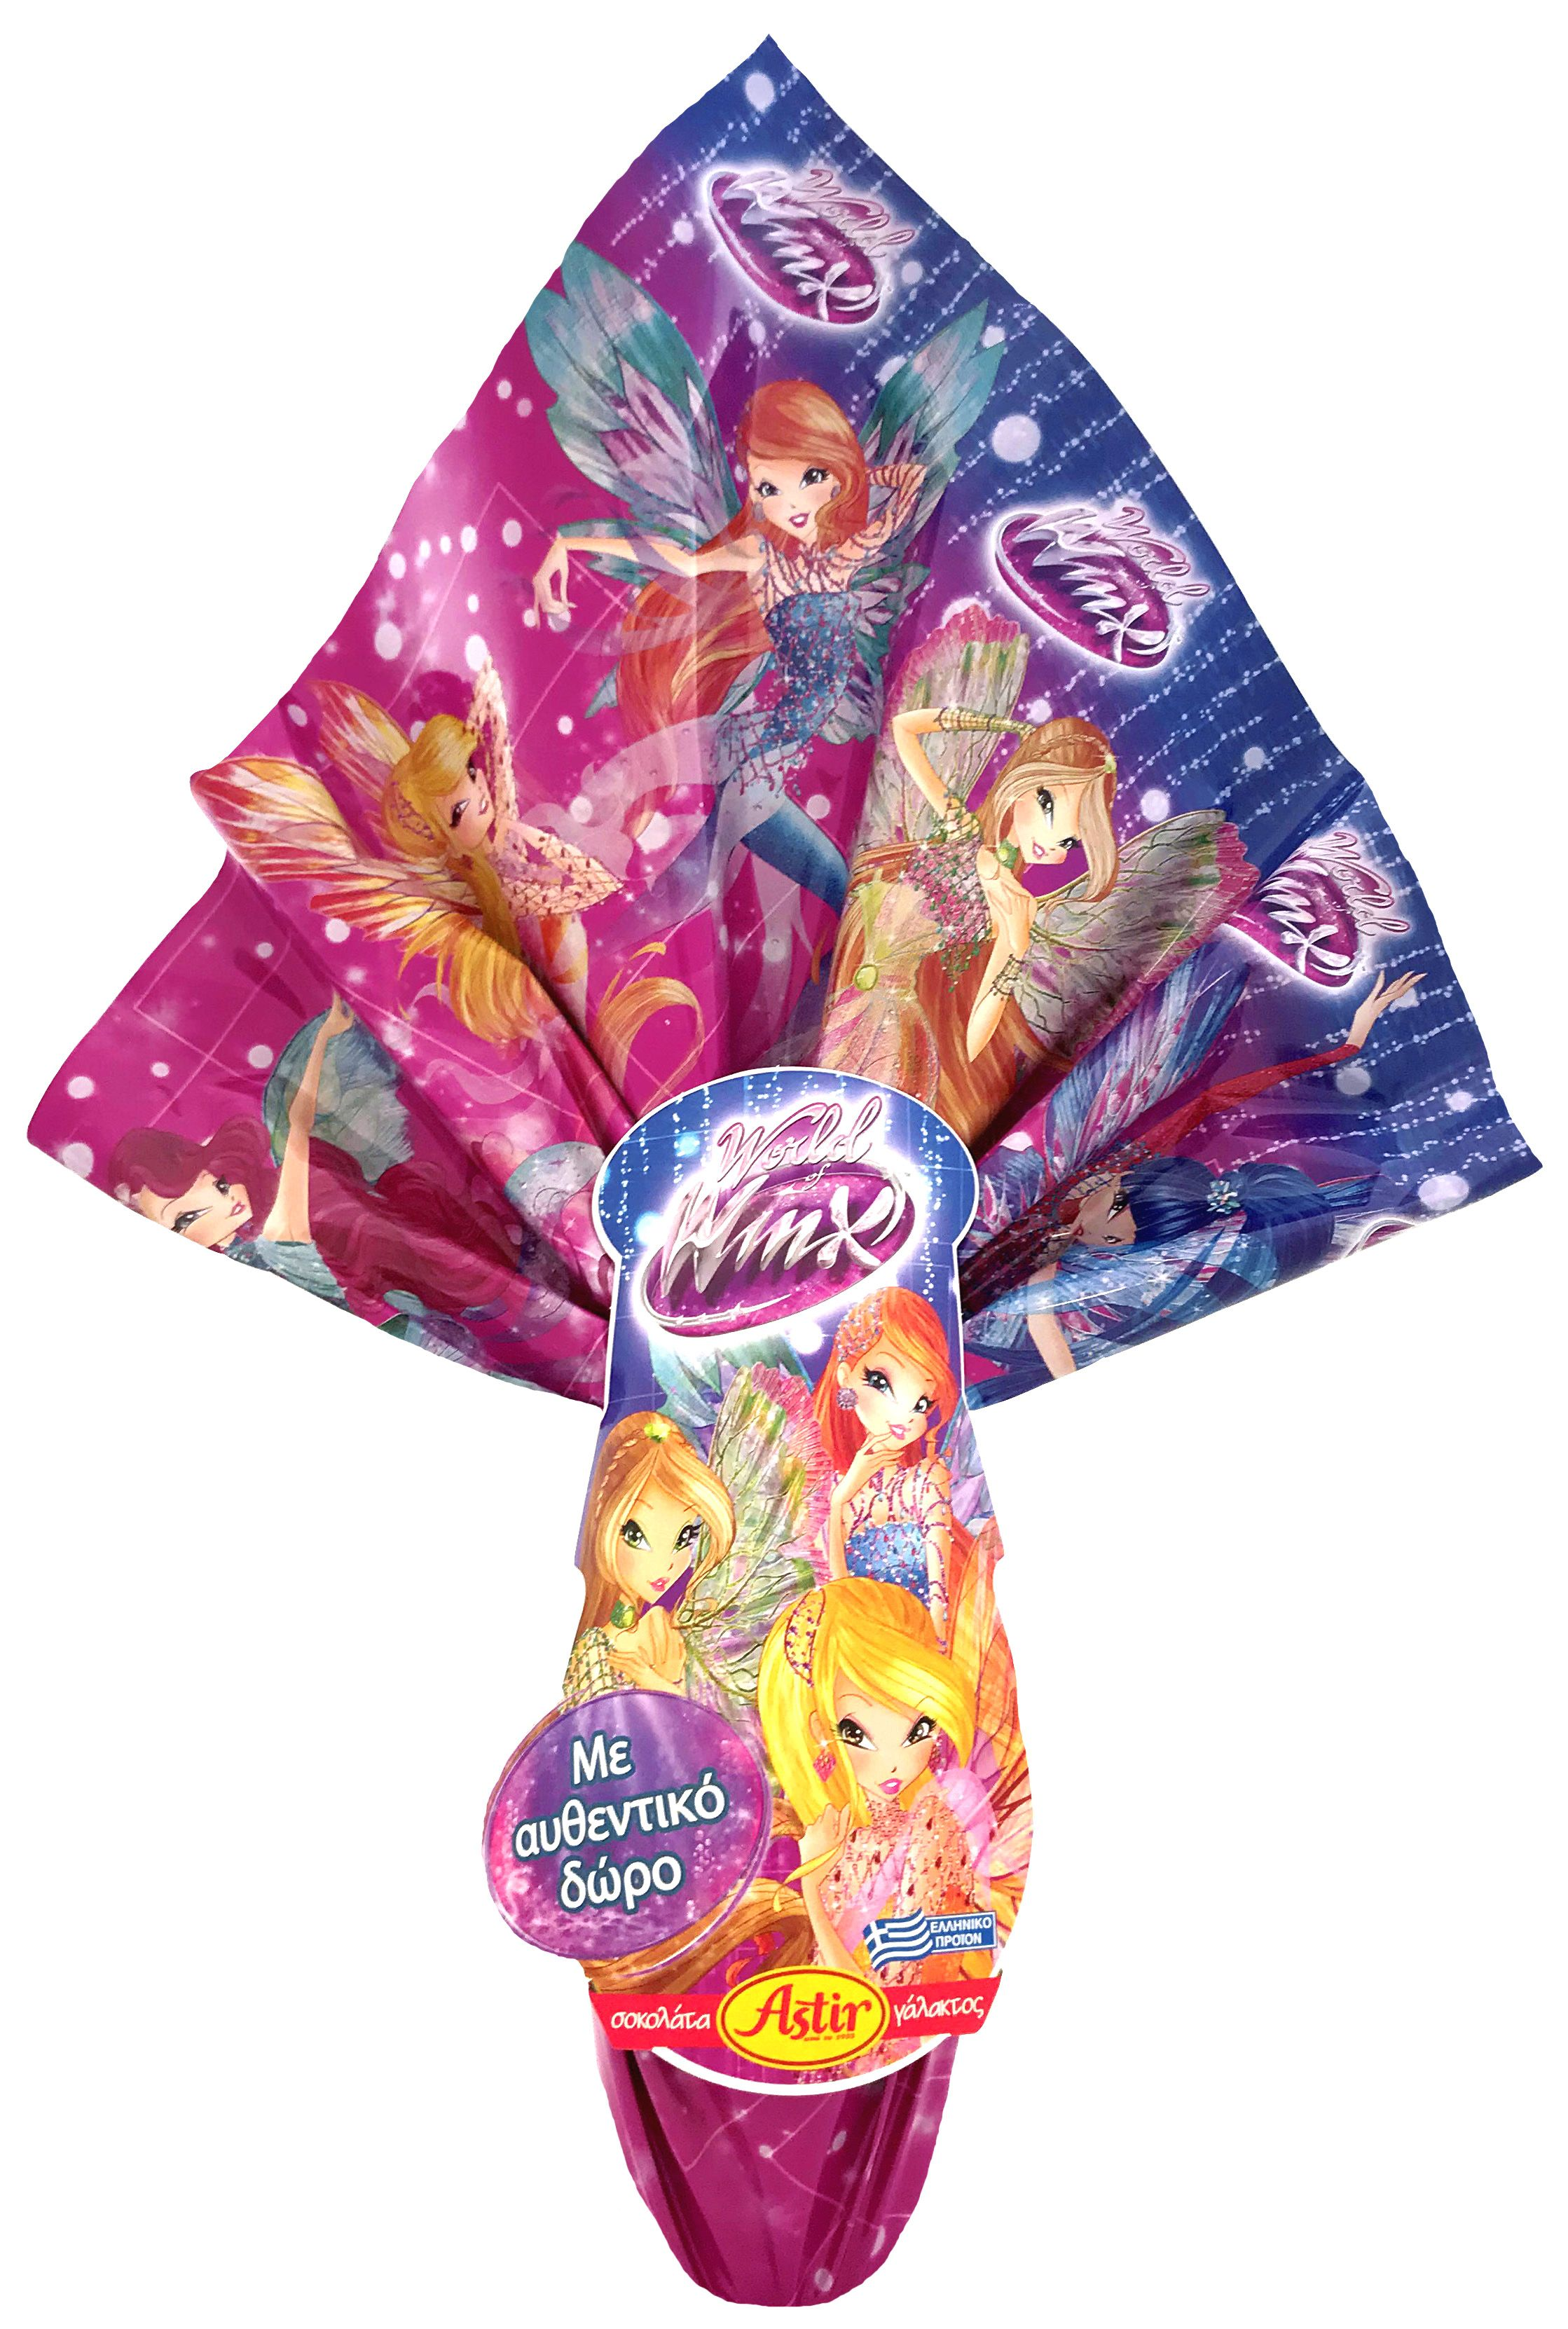 Winx Club food and promotions easter eggs